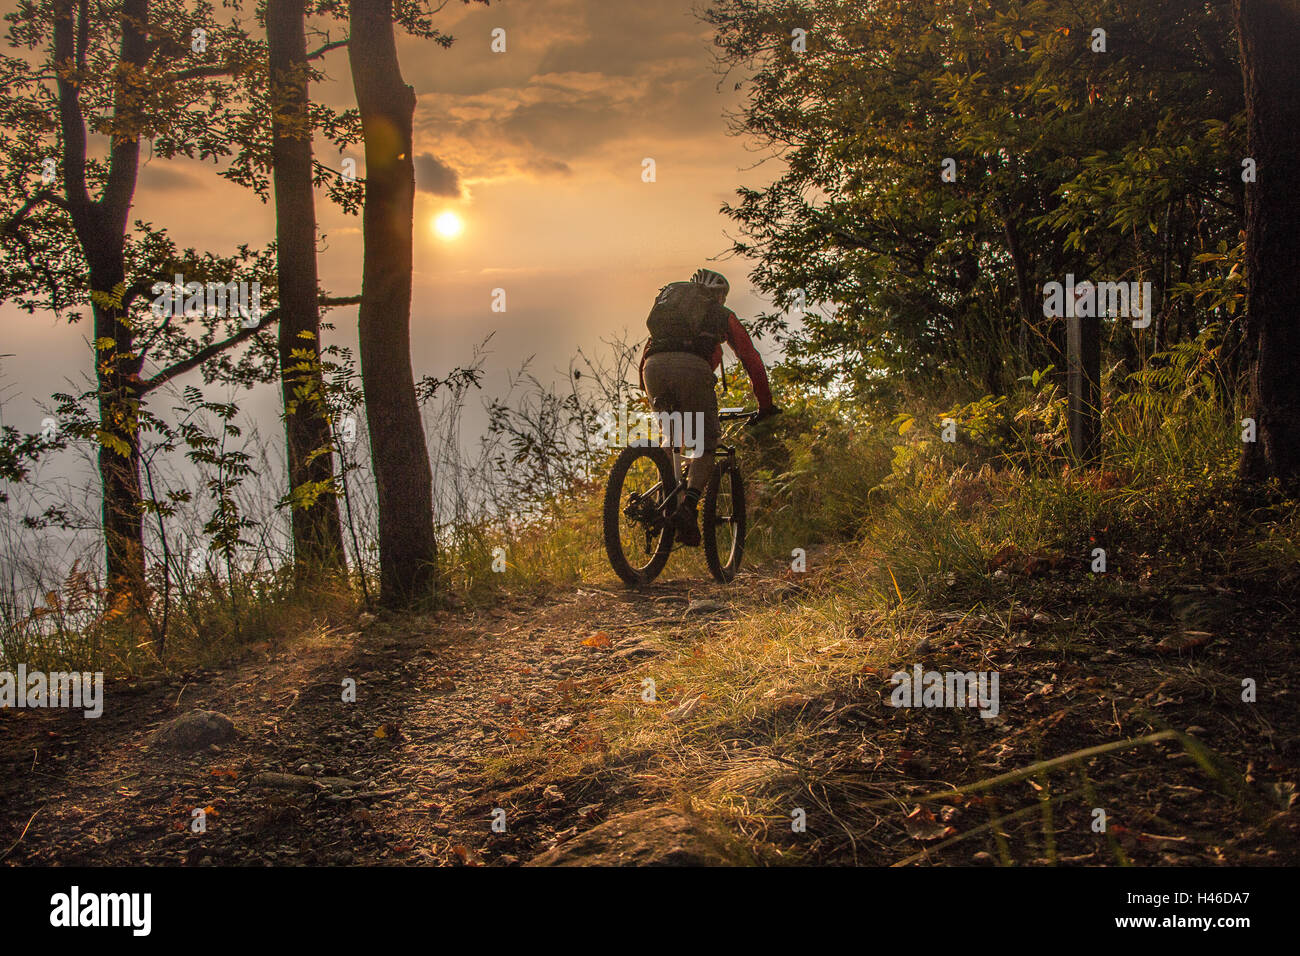 Mountain Biking till the sunset - Stock Image